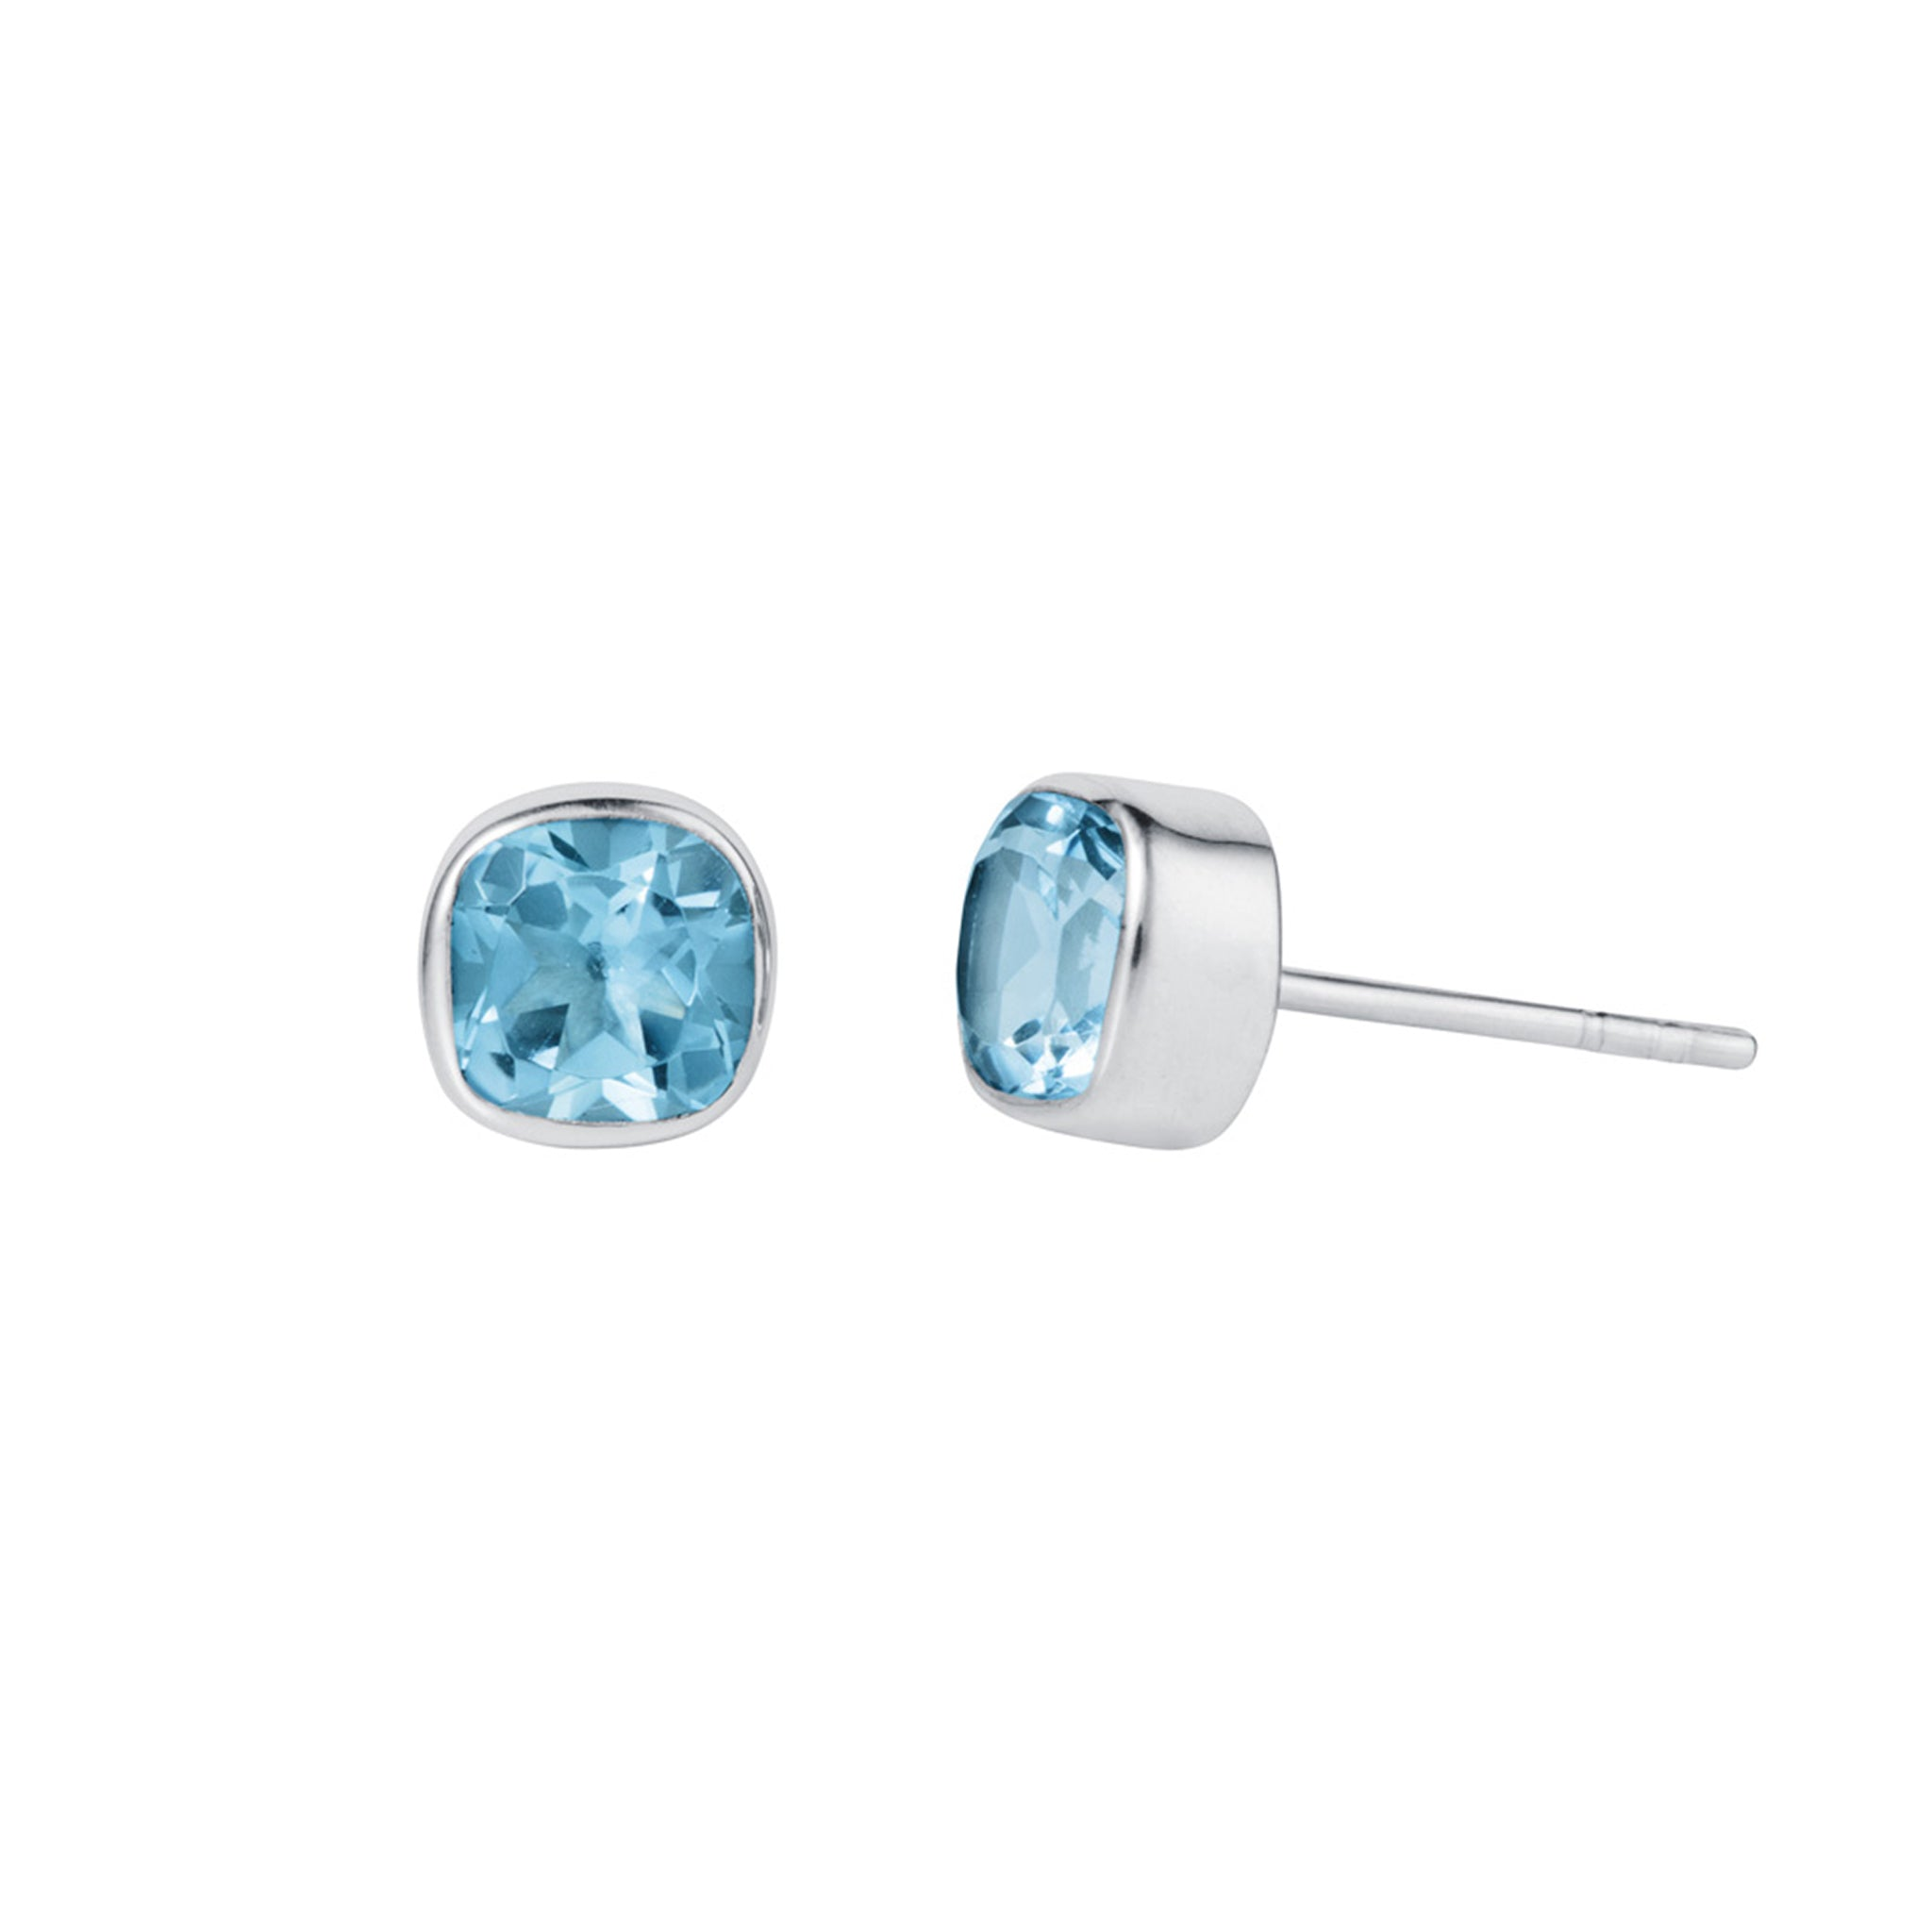 Blue Topaz and Silver Gem Squared Stud Earrings